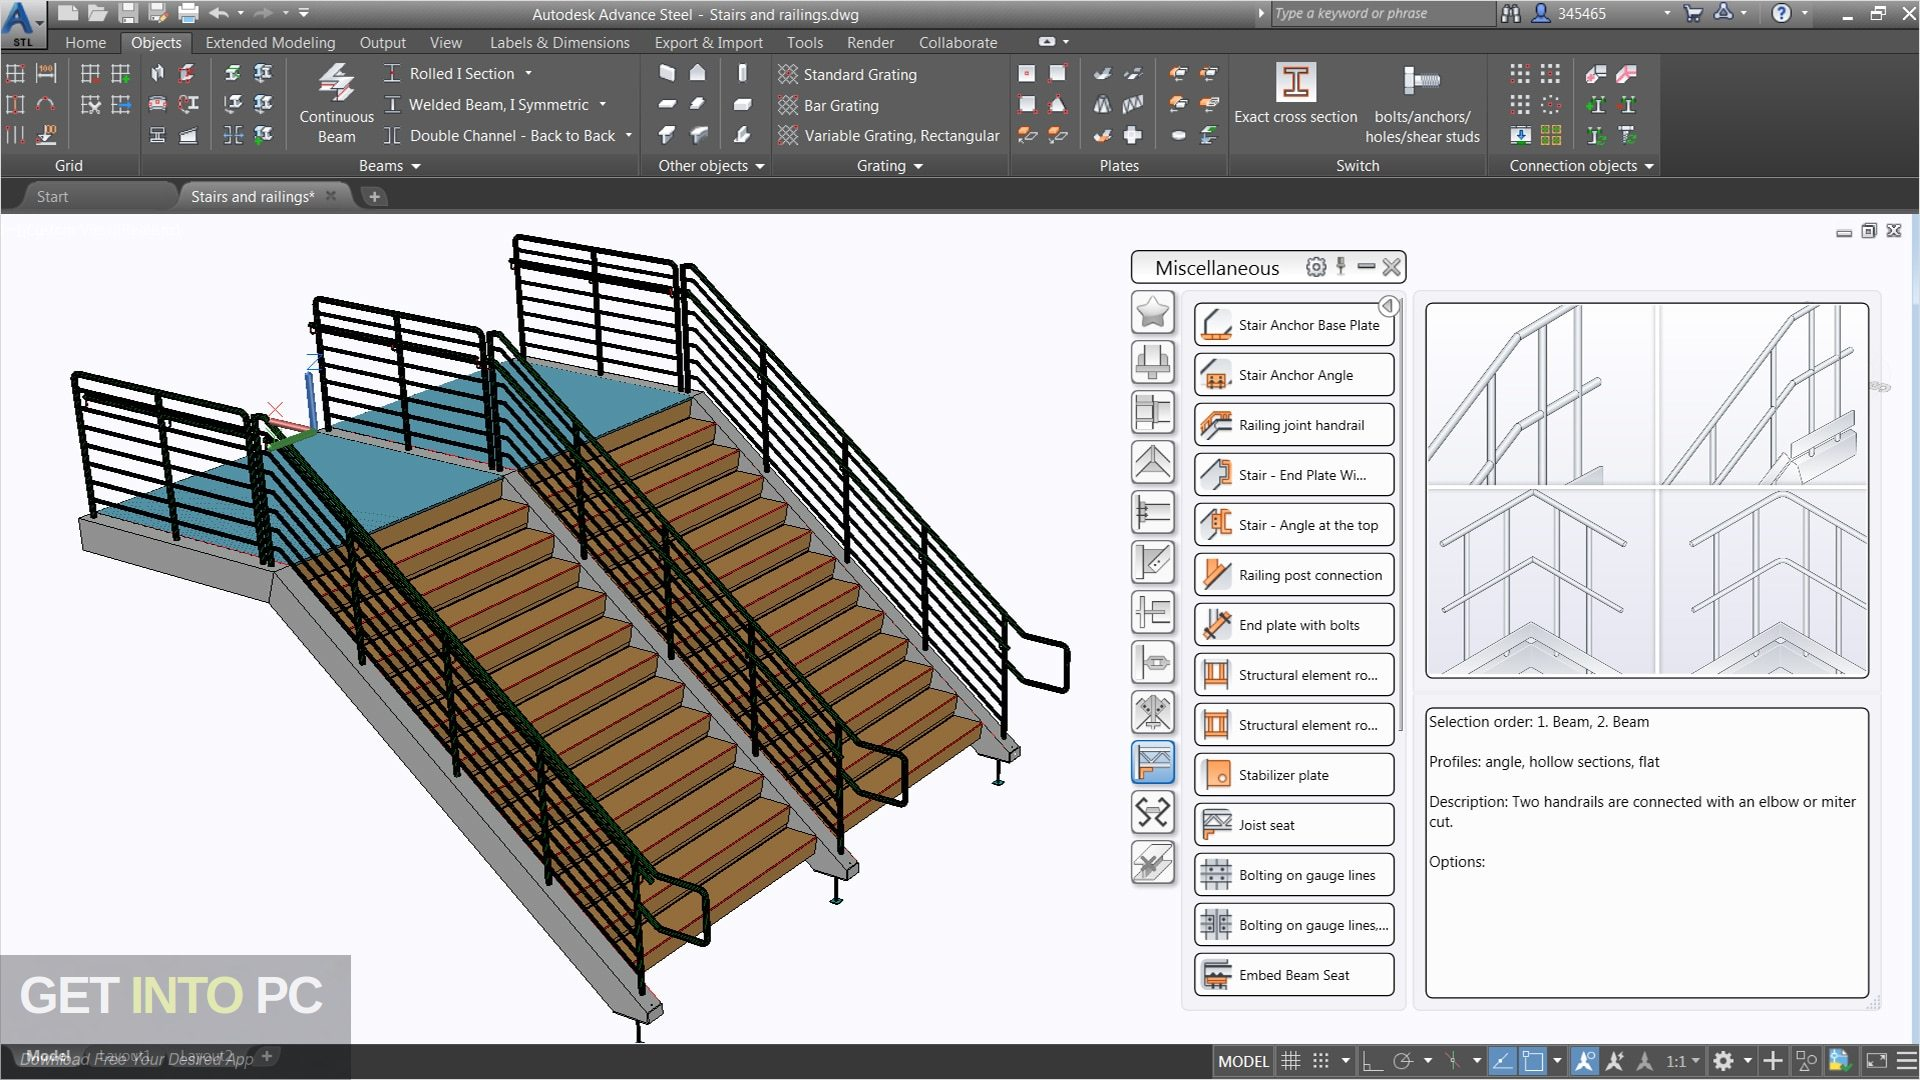 Autodesk Advance Steel 2019 Offline Installer Download-GetintoPC.com